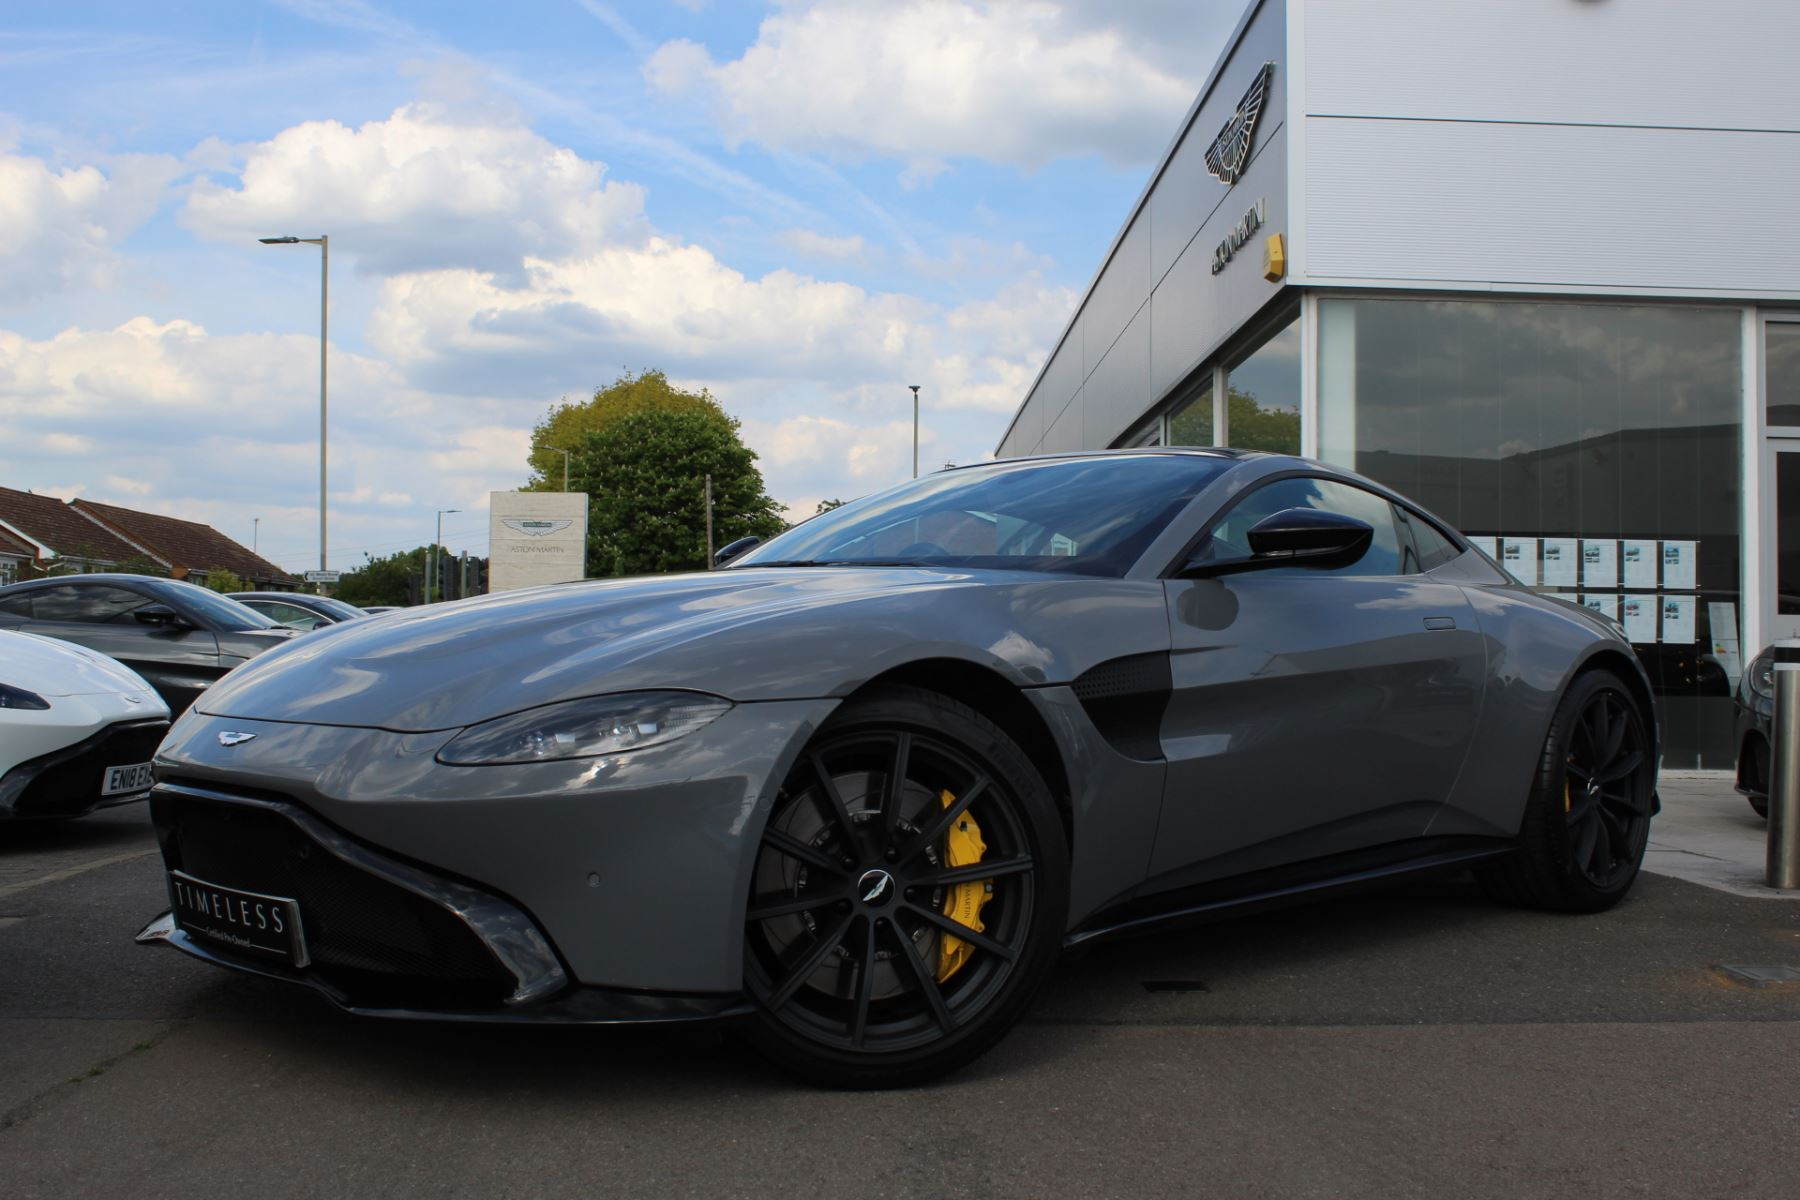 Aston Martin V8 Vantage Coupe 2dr ZF 8 Speed image 1